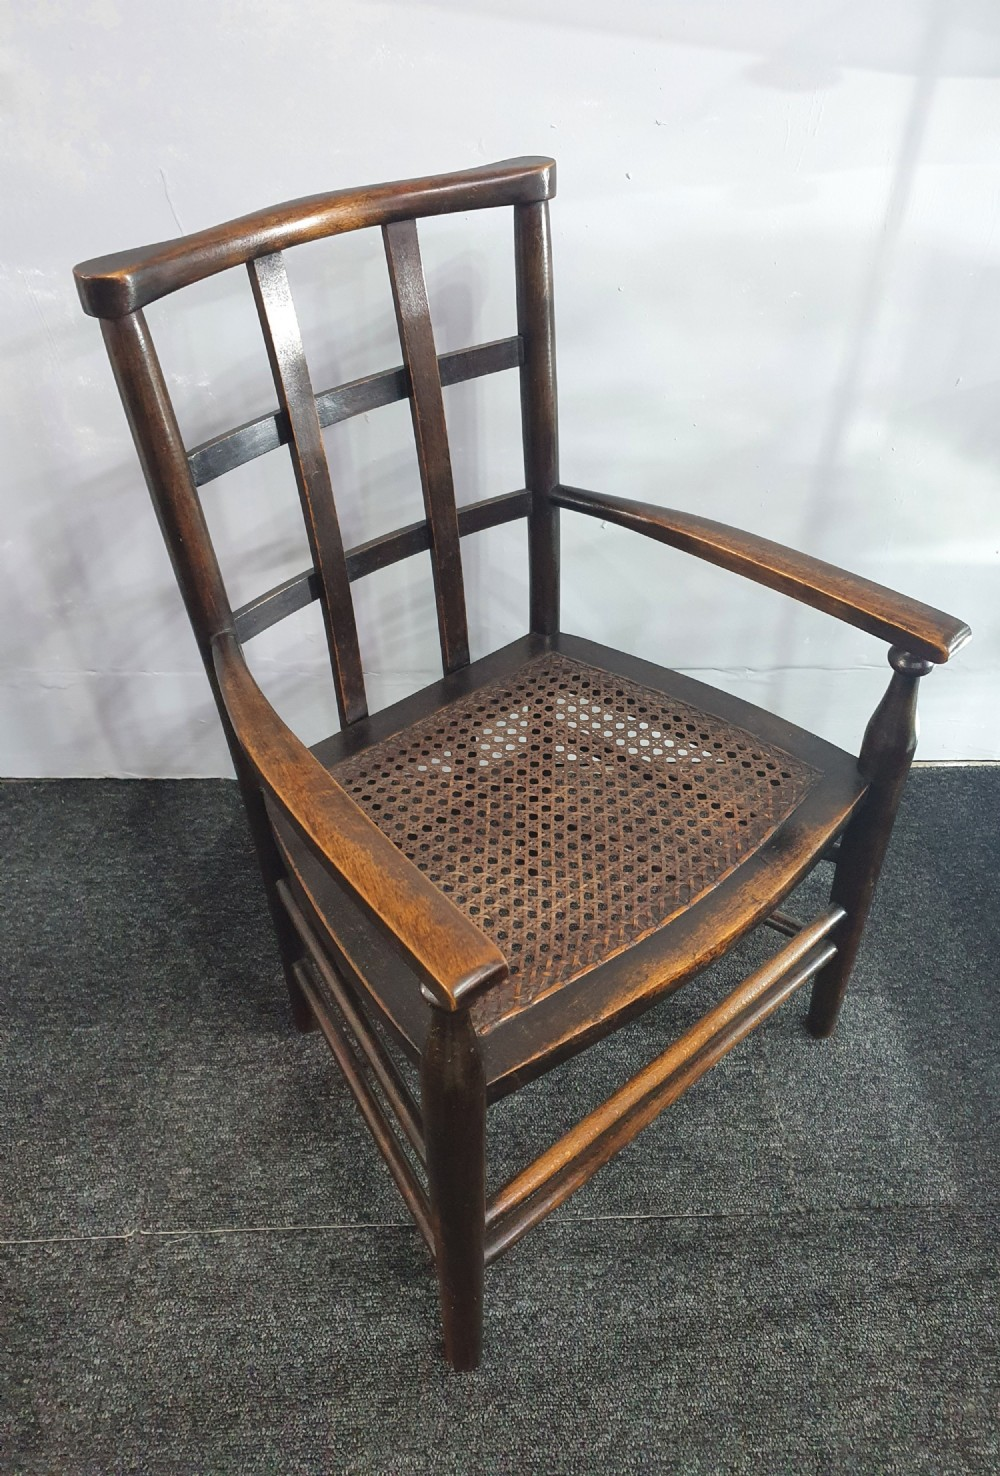 edwardian child's chair beechwood and cane